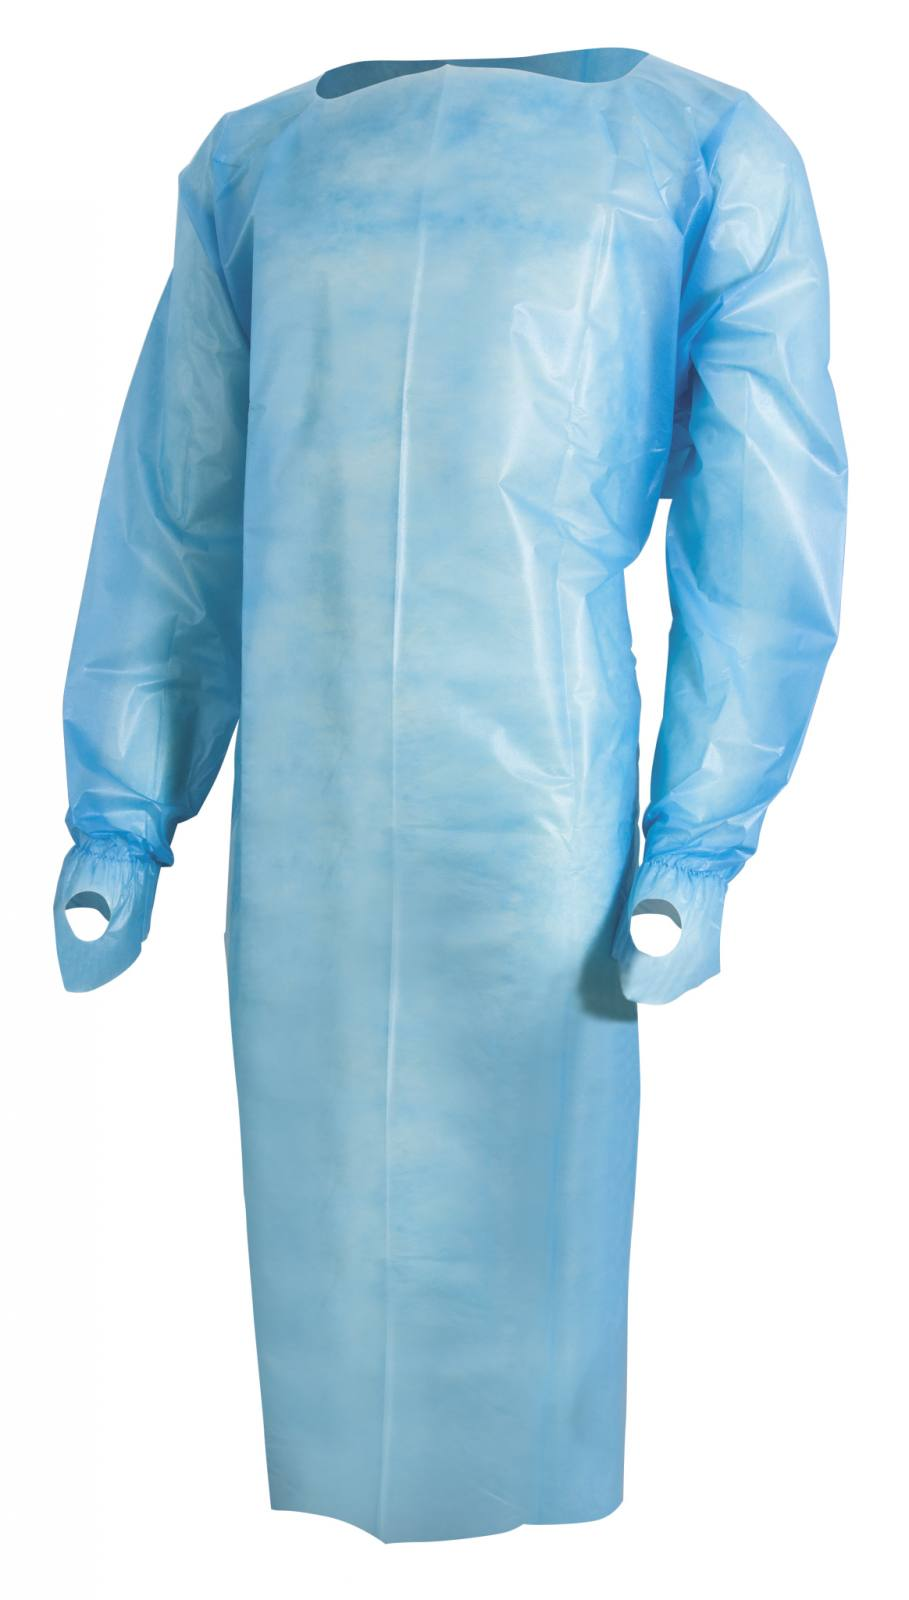 McKesson Brand MCKESSON FLUID-RESISTANT ISOLATION GOWN LARGE BLUE ...